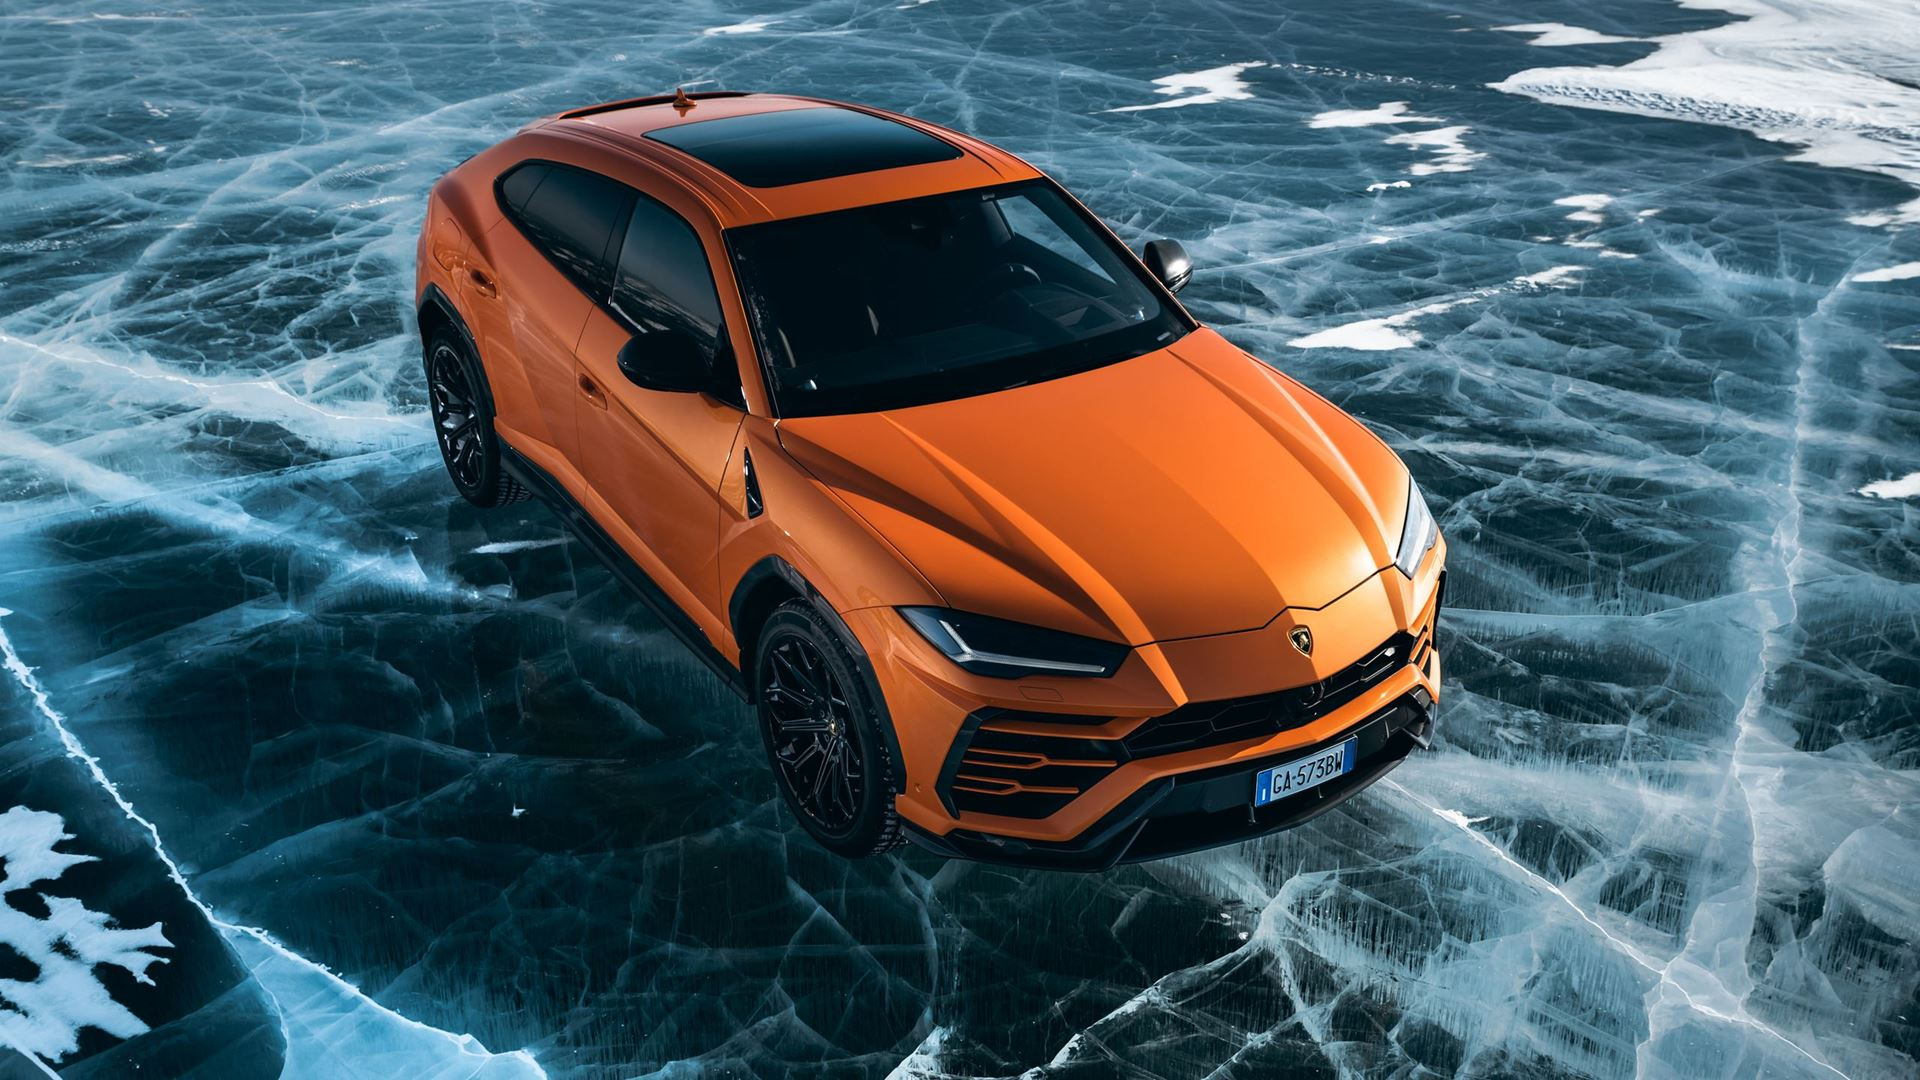 Lamborghini Urus: 6 driving modes to enjoy the Super SUV in 6 different ways - Image 8